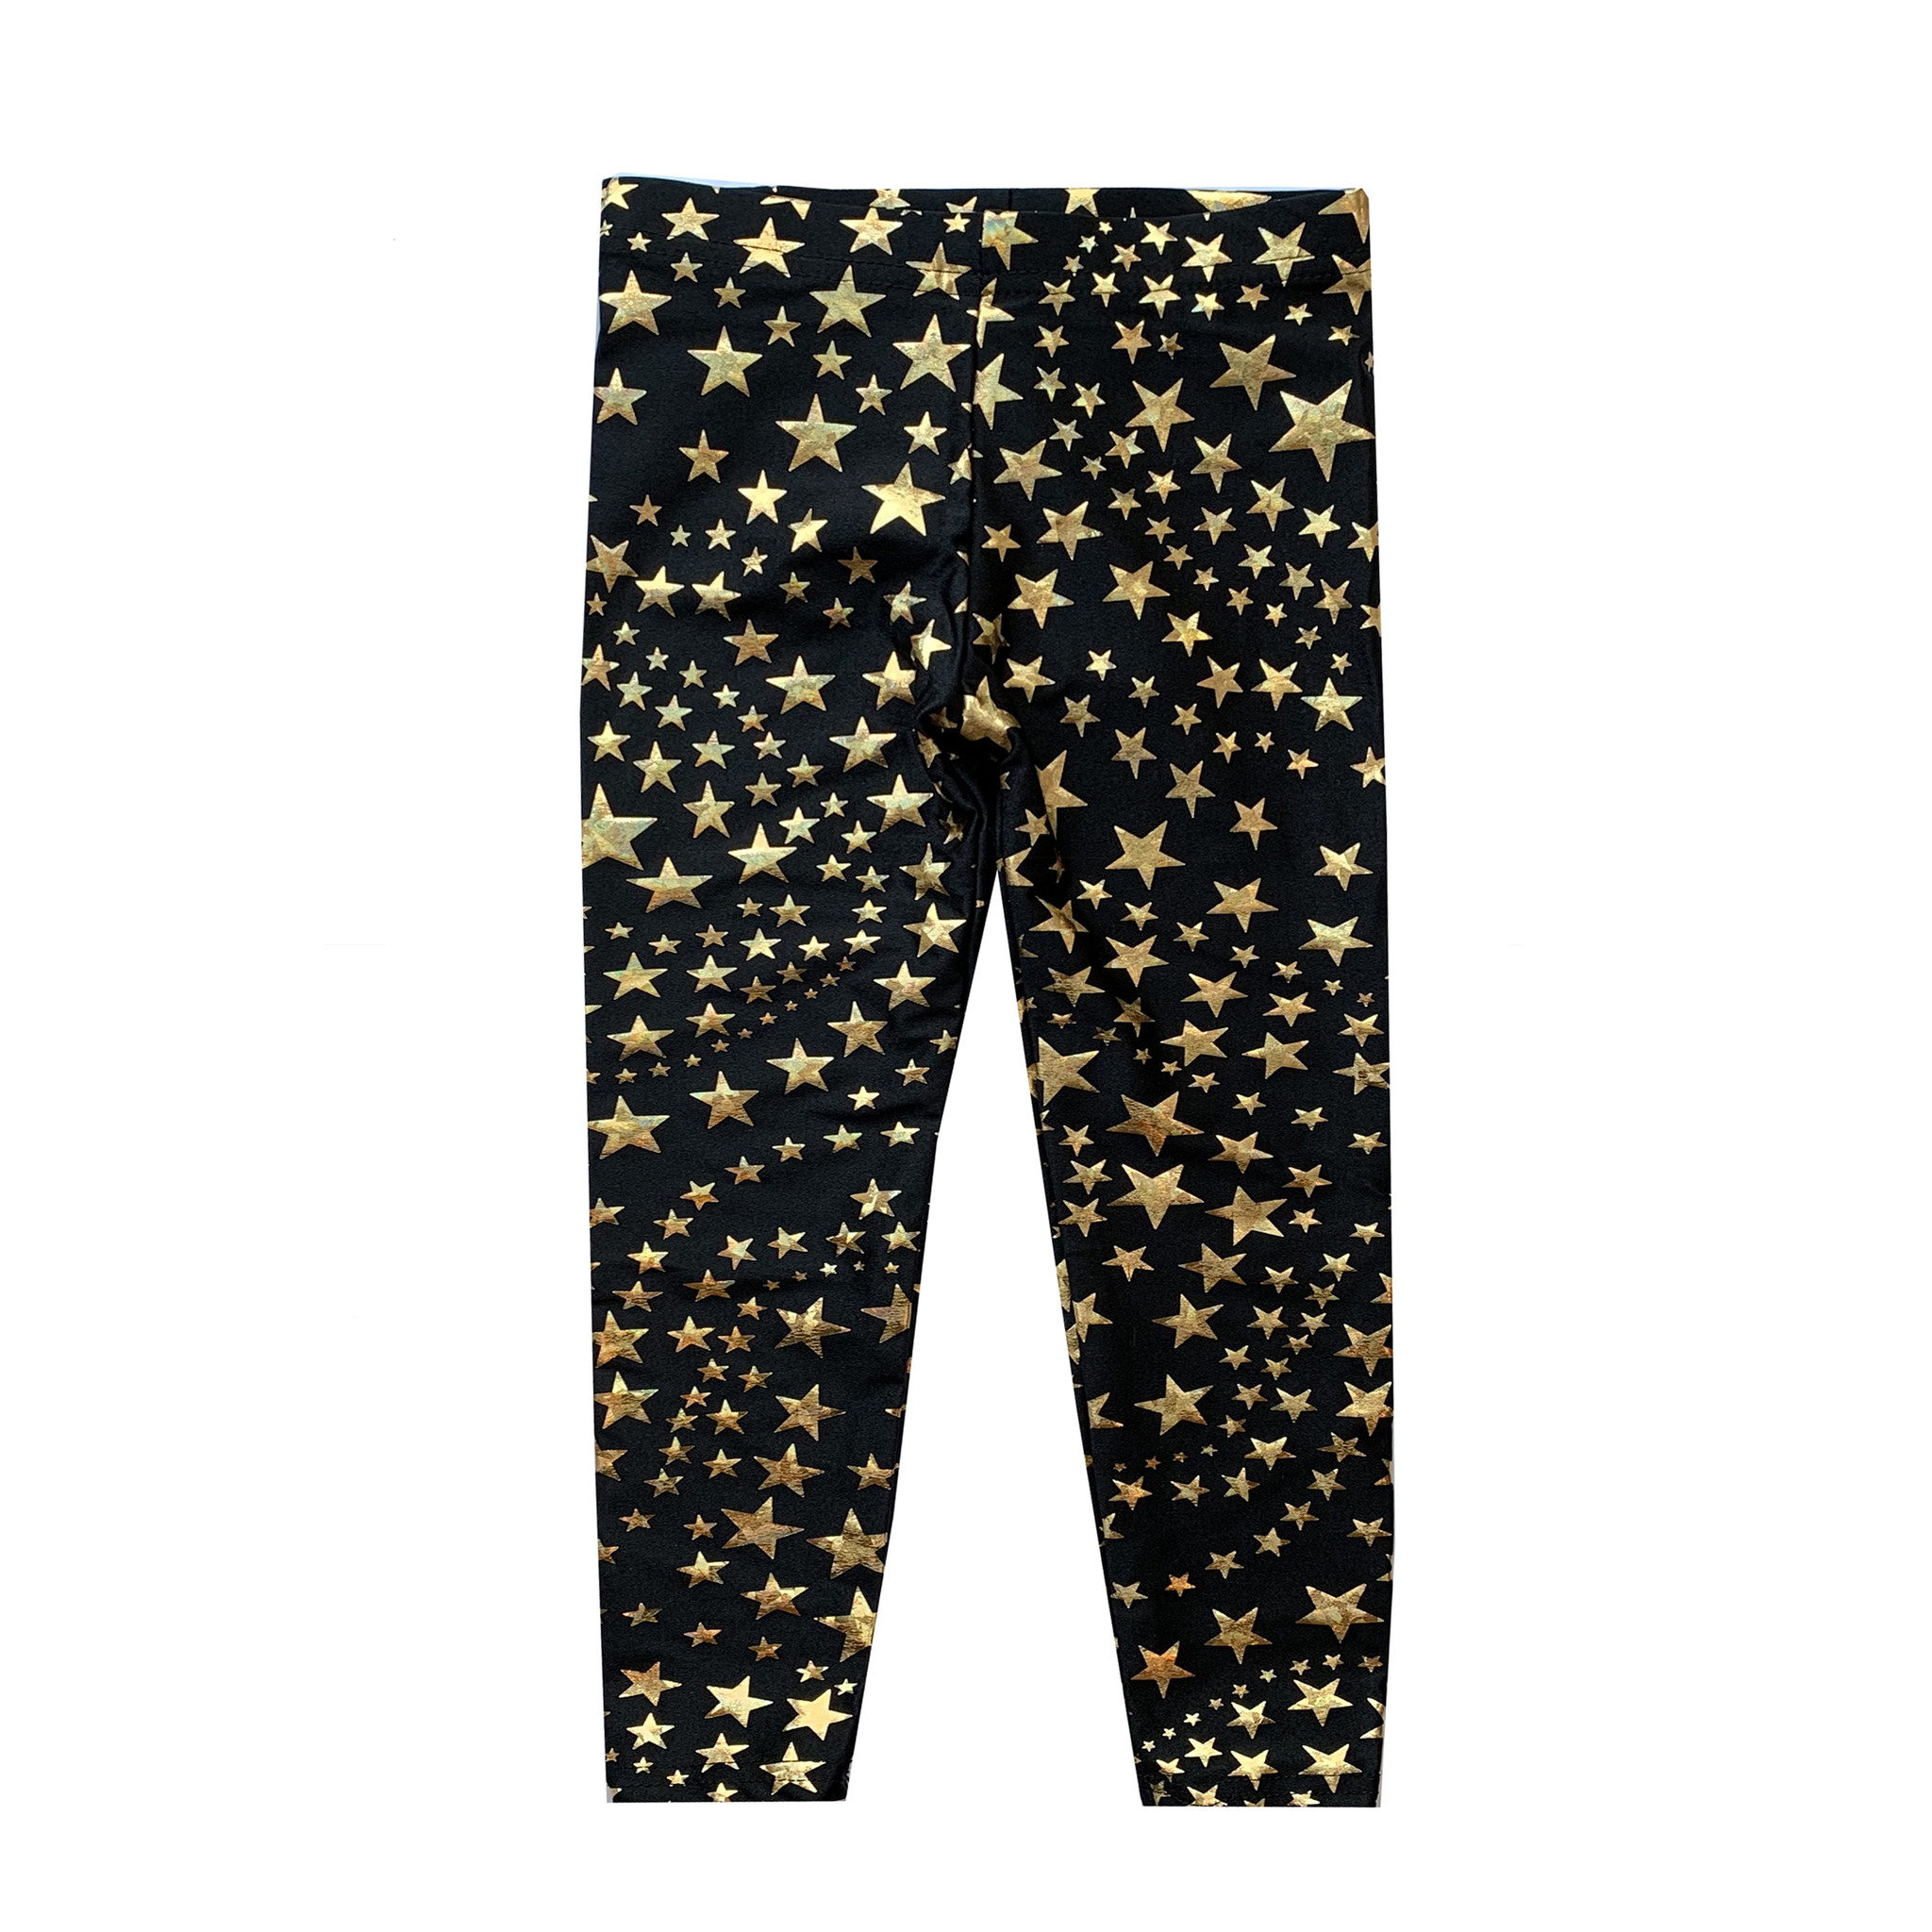 Dori Creations Infant Gold Stars Legging